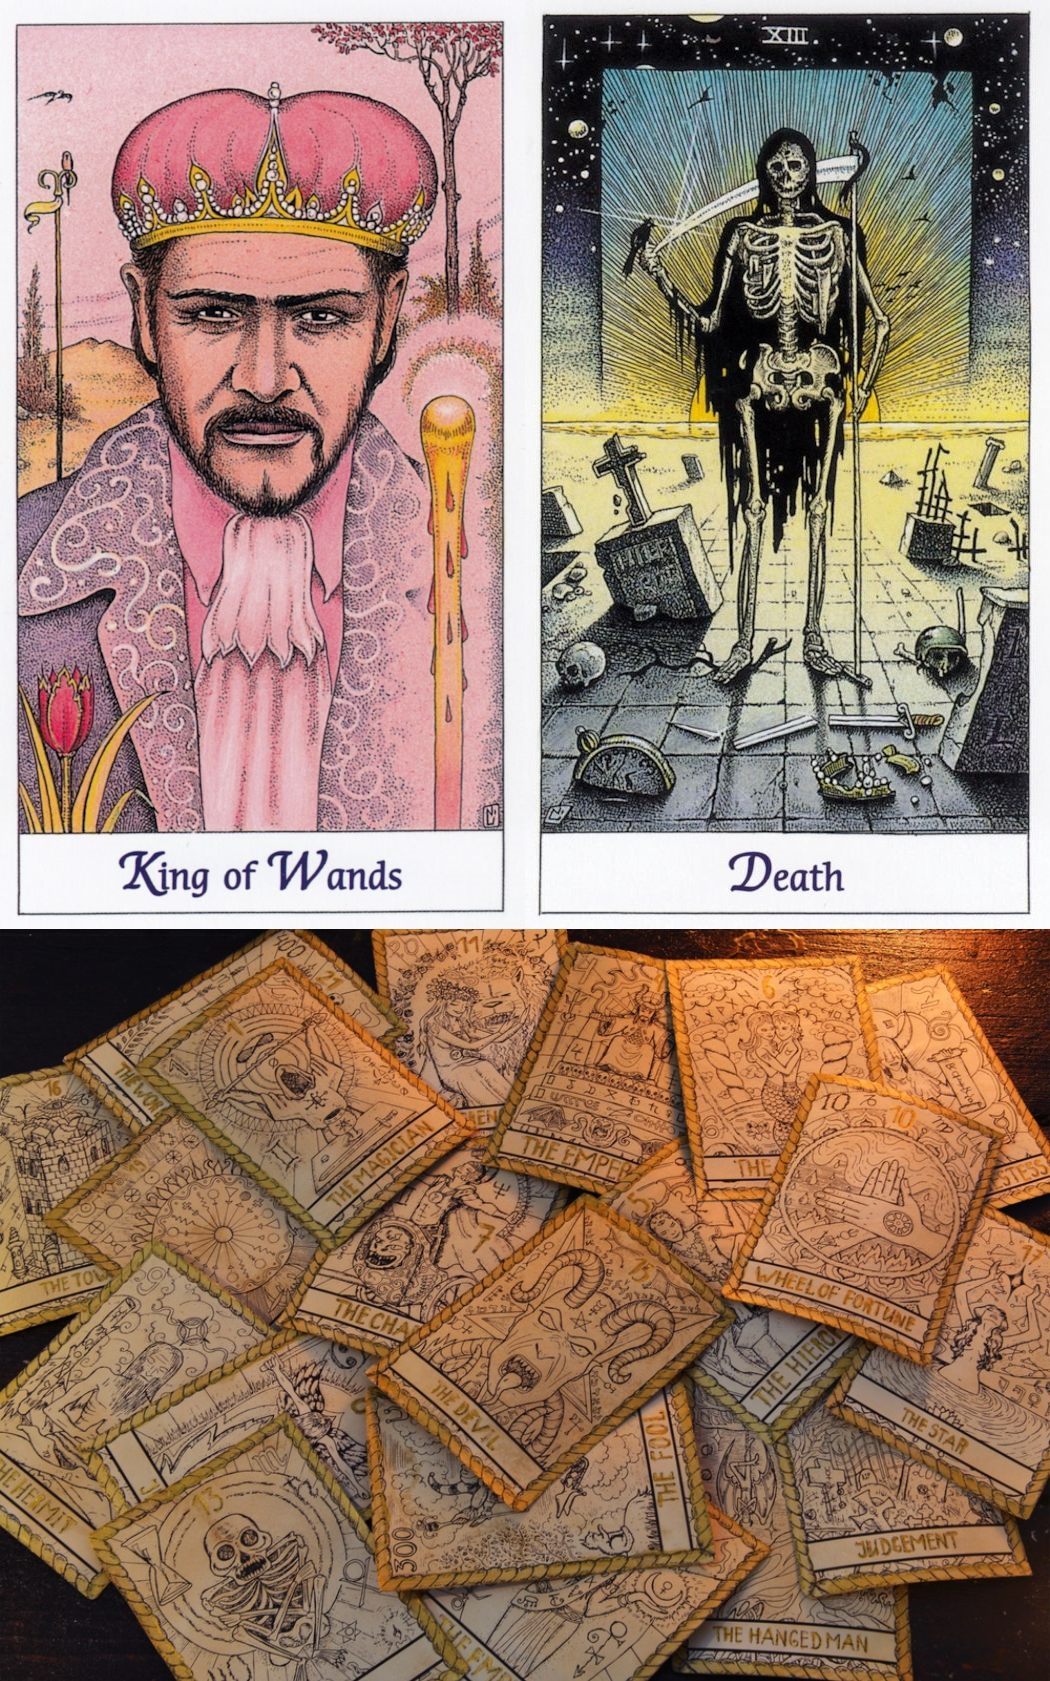 Free Tarot Card Reading Uk Yes And No And Tarot Reading Tarot Card Reading Wiki And Free Tarot Card Sp Free Tarot Cards Free Tarot Reading Tarot Cards Online